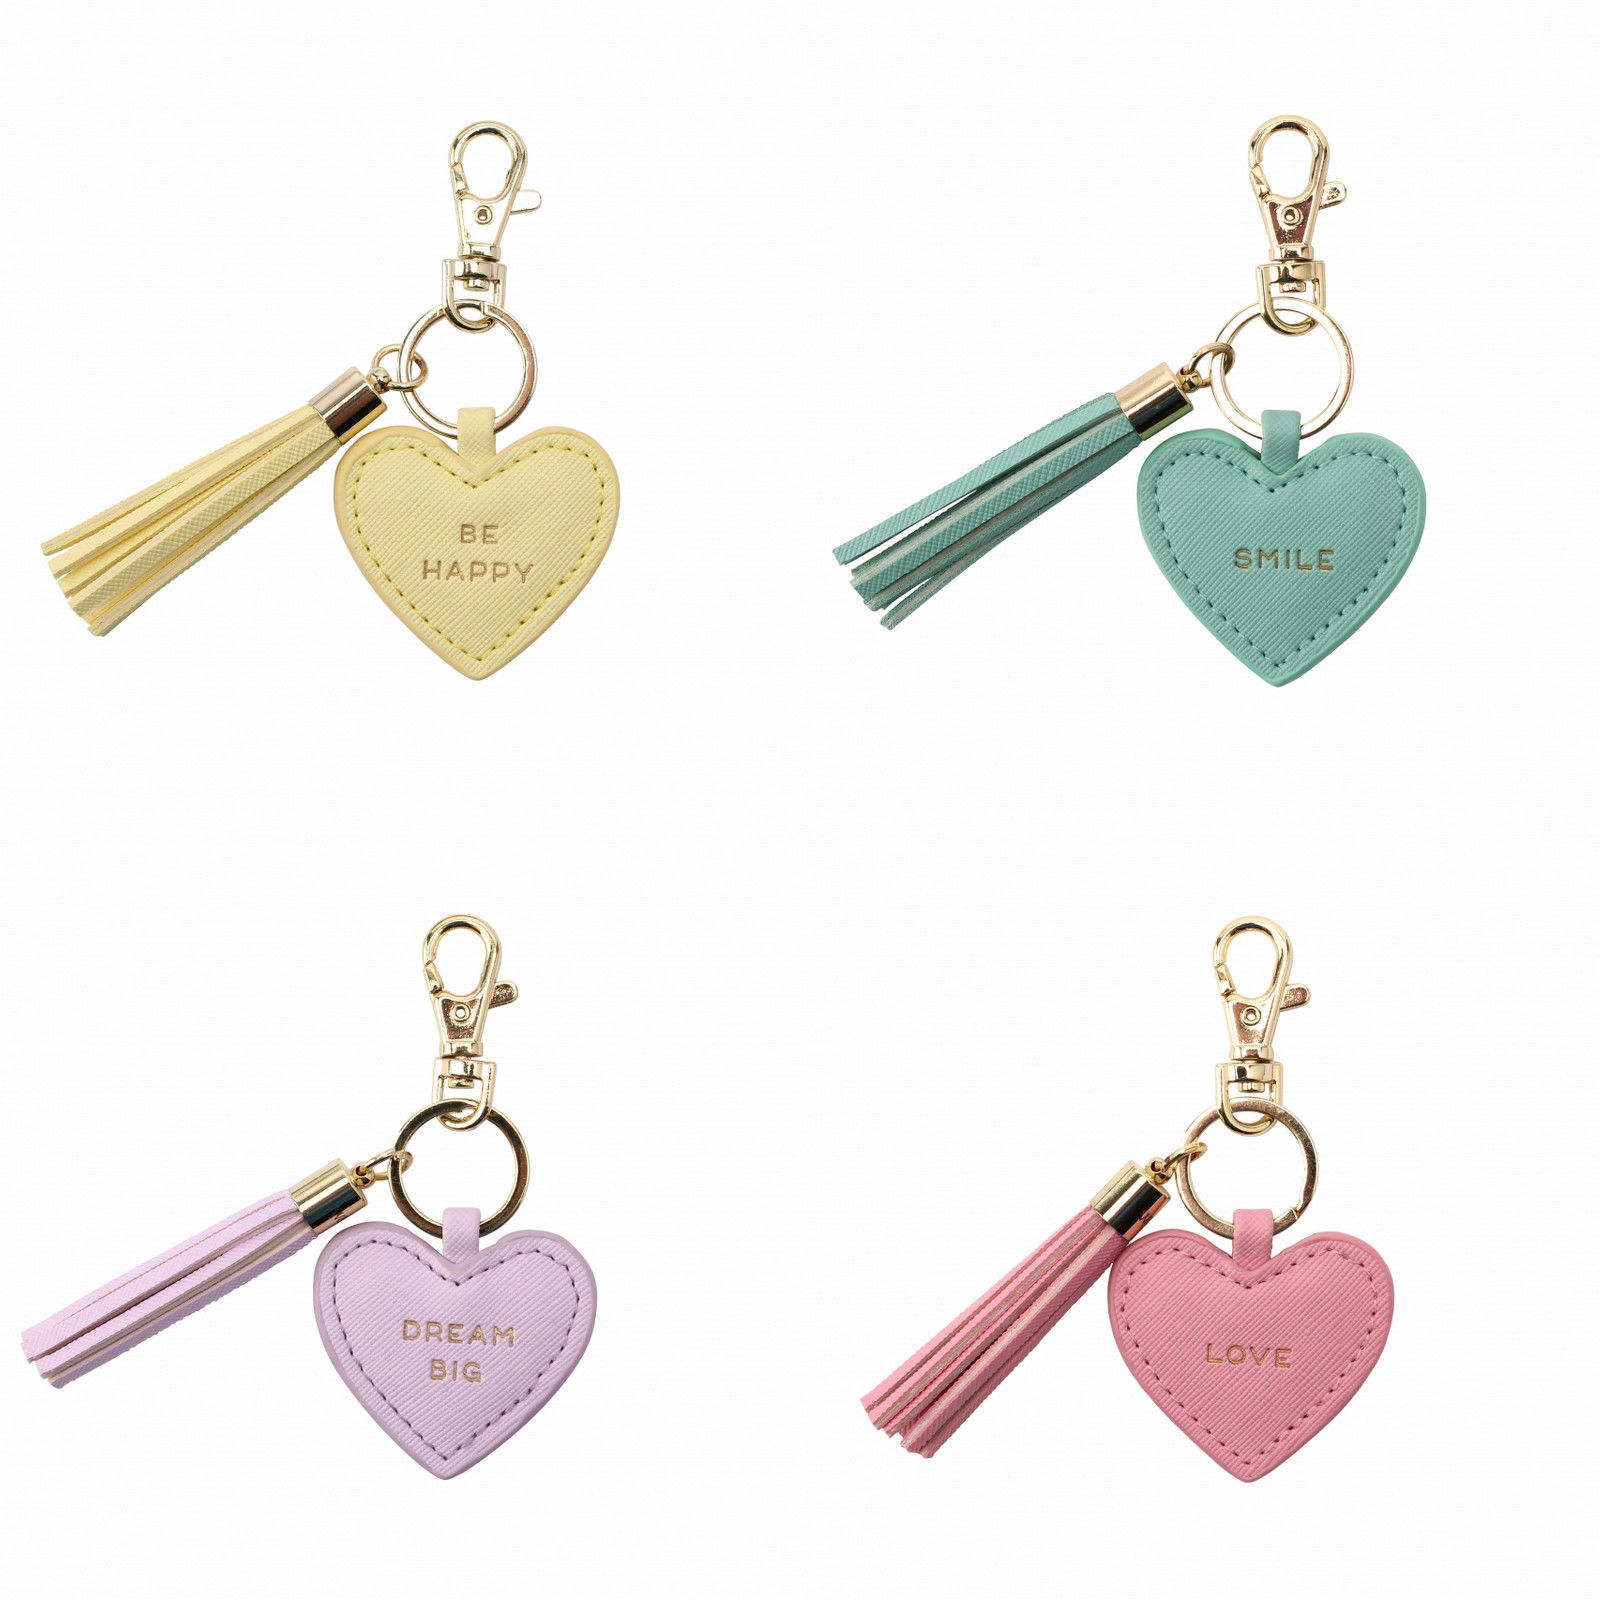 HEART KEYRING: LOVE, SMILE, BE HAPPY, DREAM BIG Keychain Handbag Charm Gift AD1861